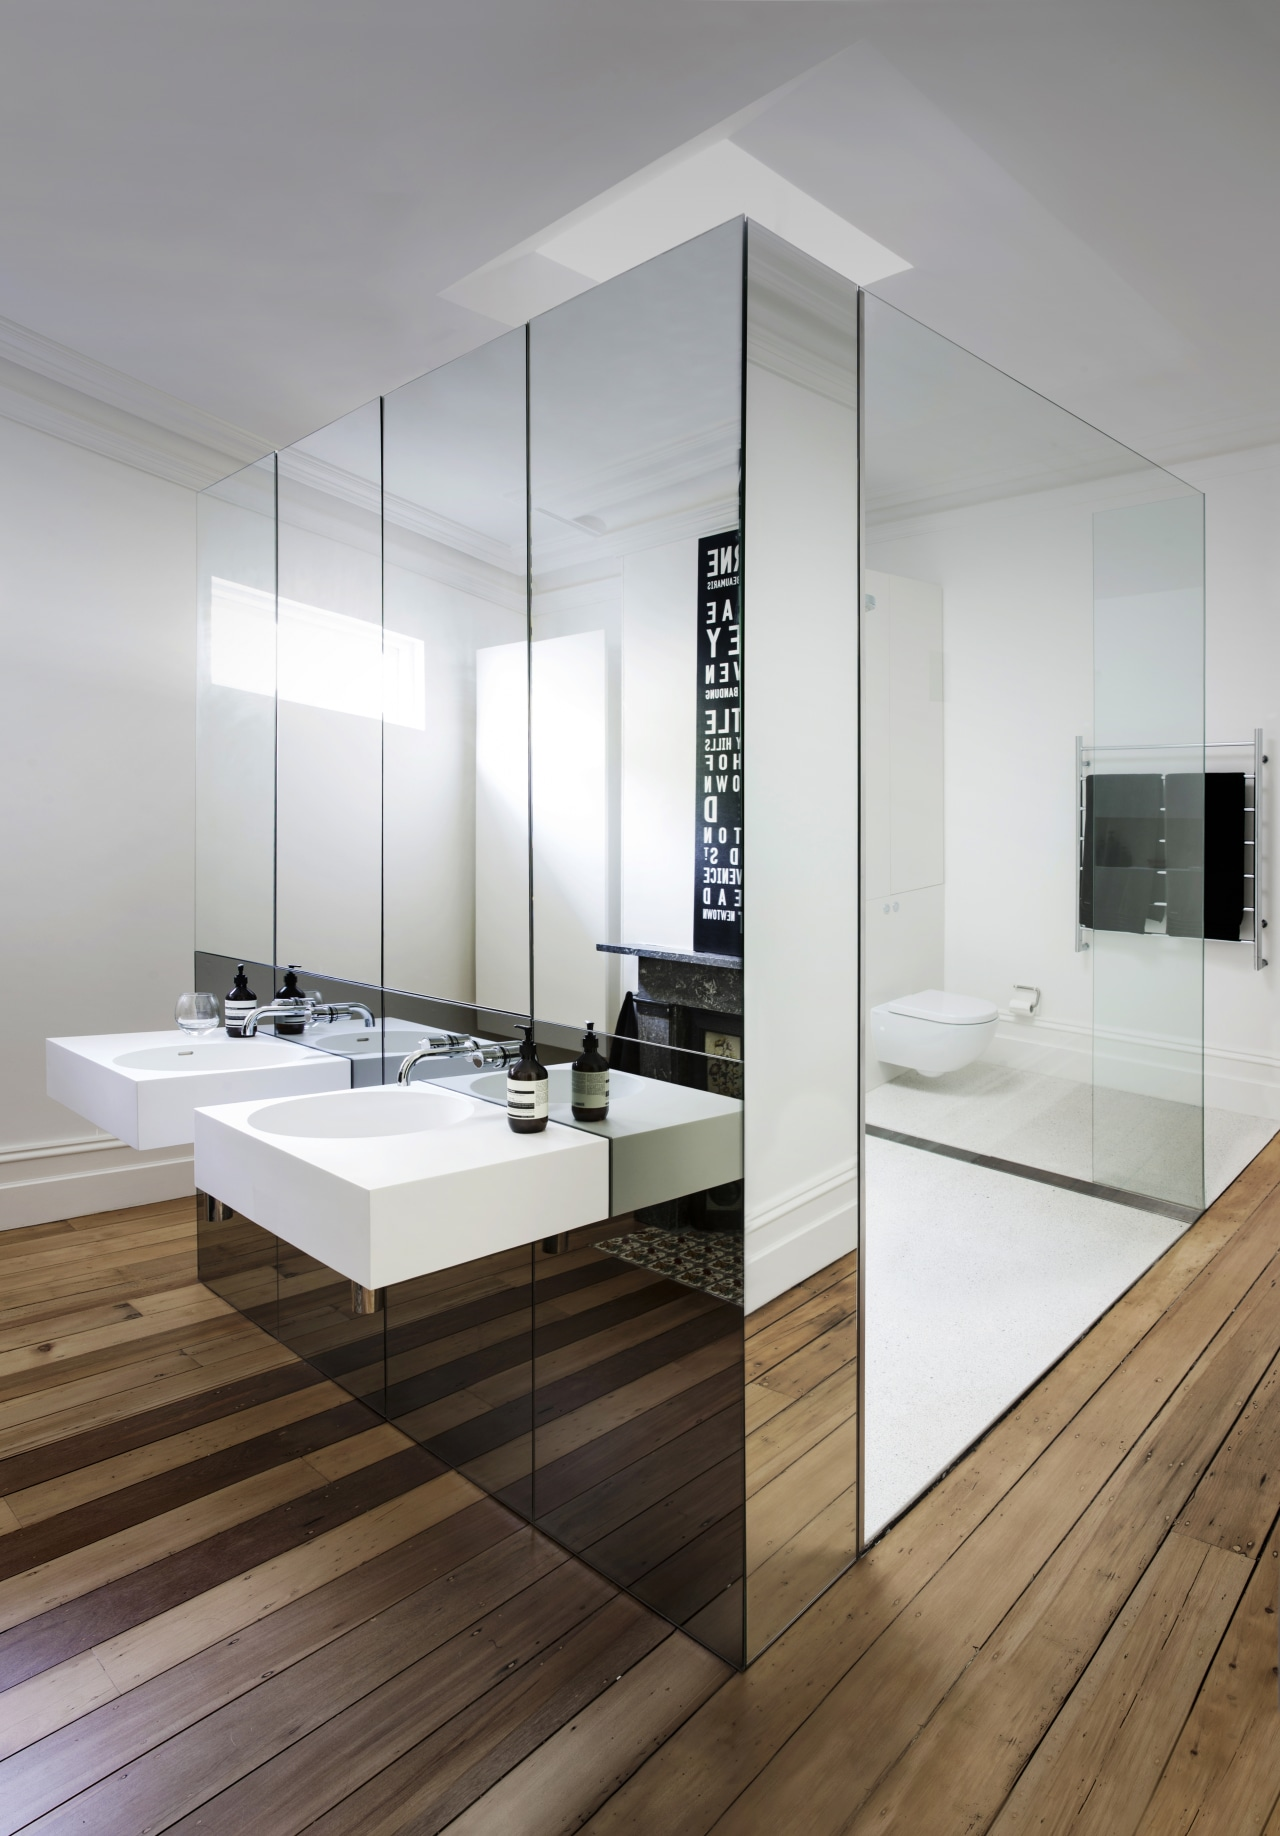 This floating vanity's use of mirrors plays up bathroom, floor, interior design, sink, white, gray